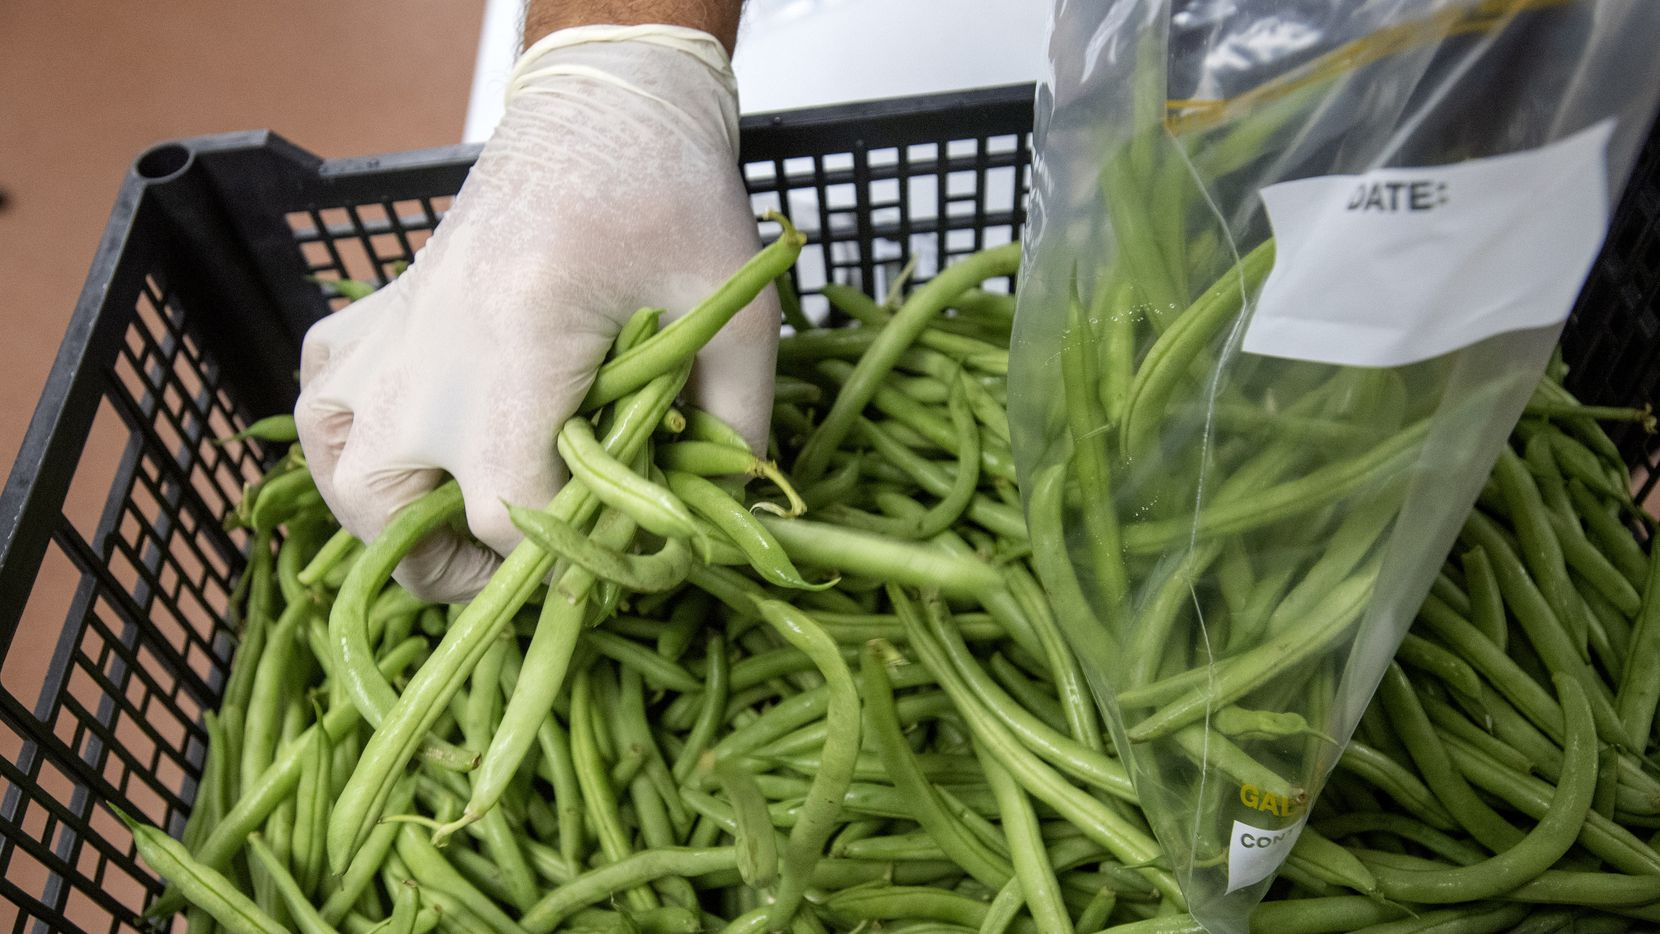 Garry Abbs, an instructional specialist of hospitality management at the Dallas College Culinary, Pastry and Hospitality Center, measures out green beans to be included in boxes of ingredients that will be picked up and used at home by students who are continuing classes online due to the coronavirus.